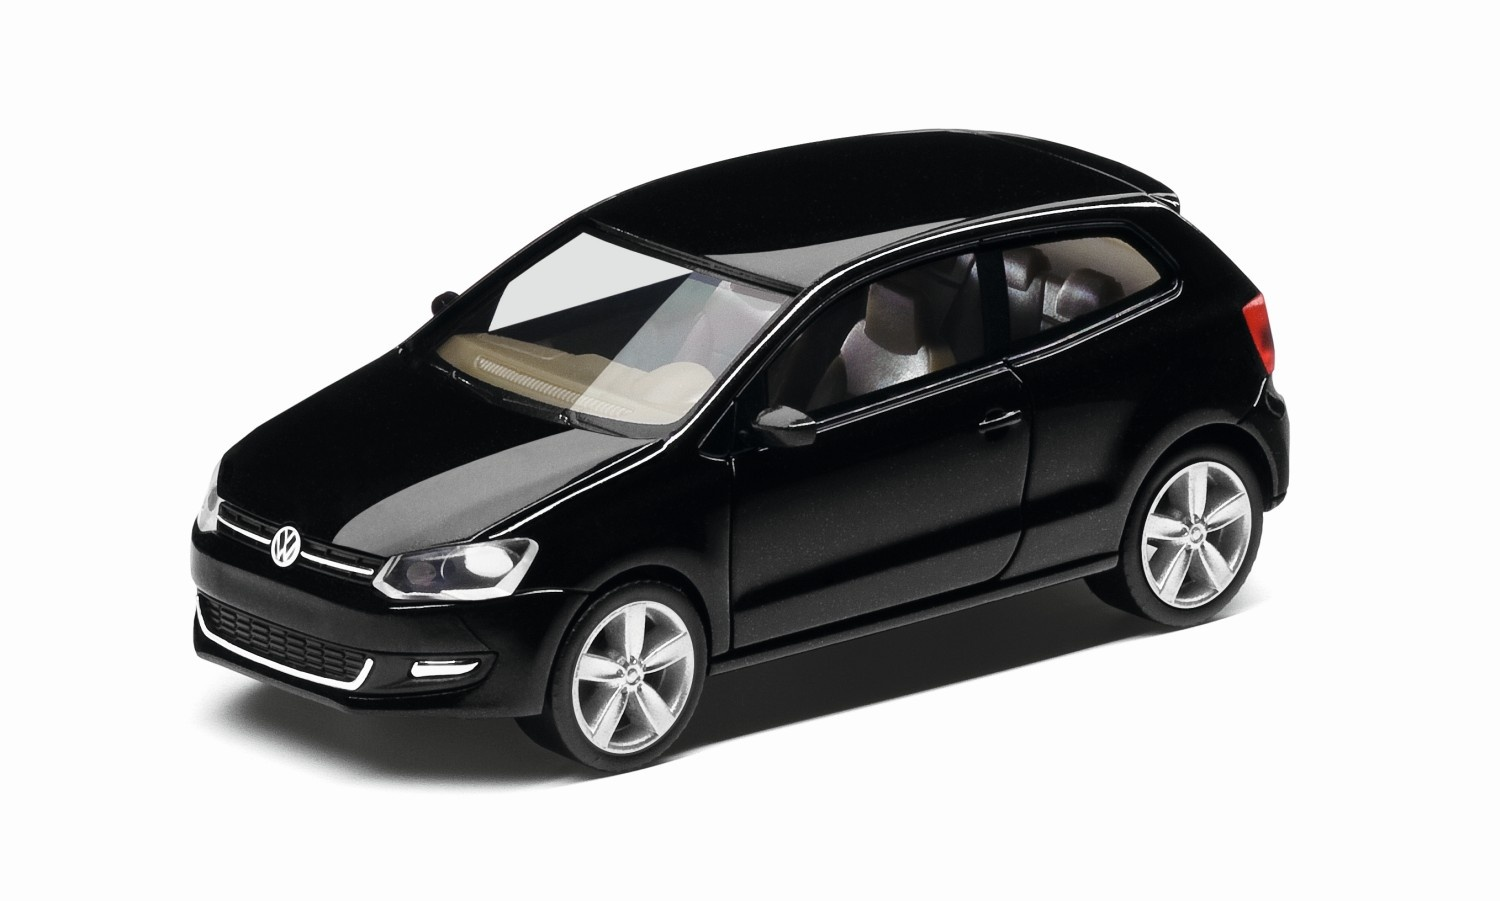 Polo A5 negro, escala 1:87